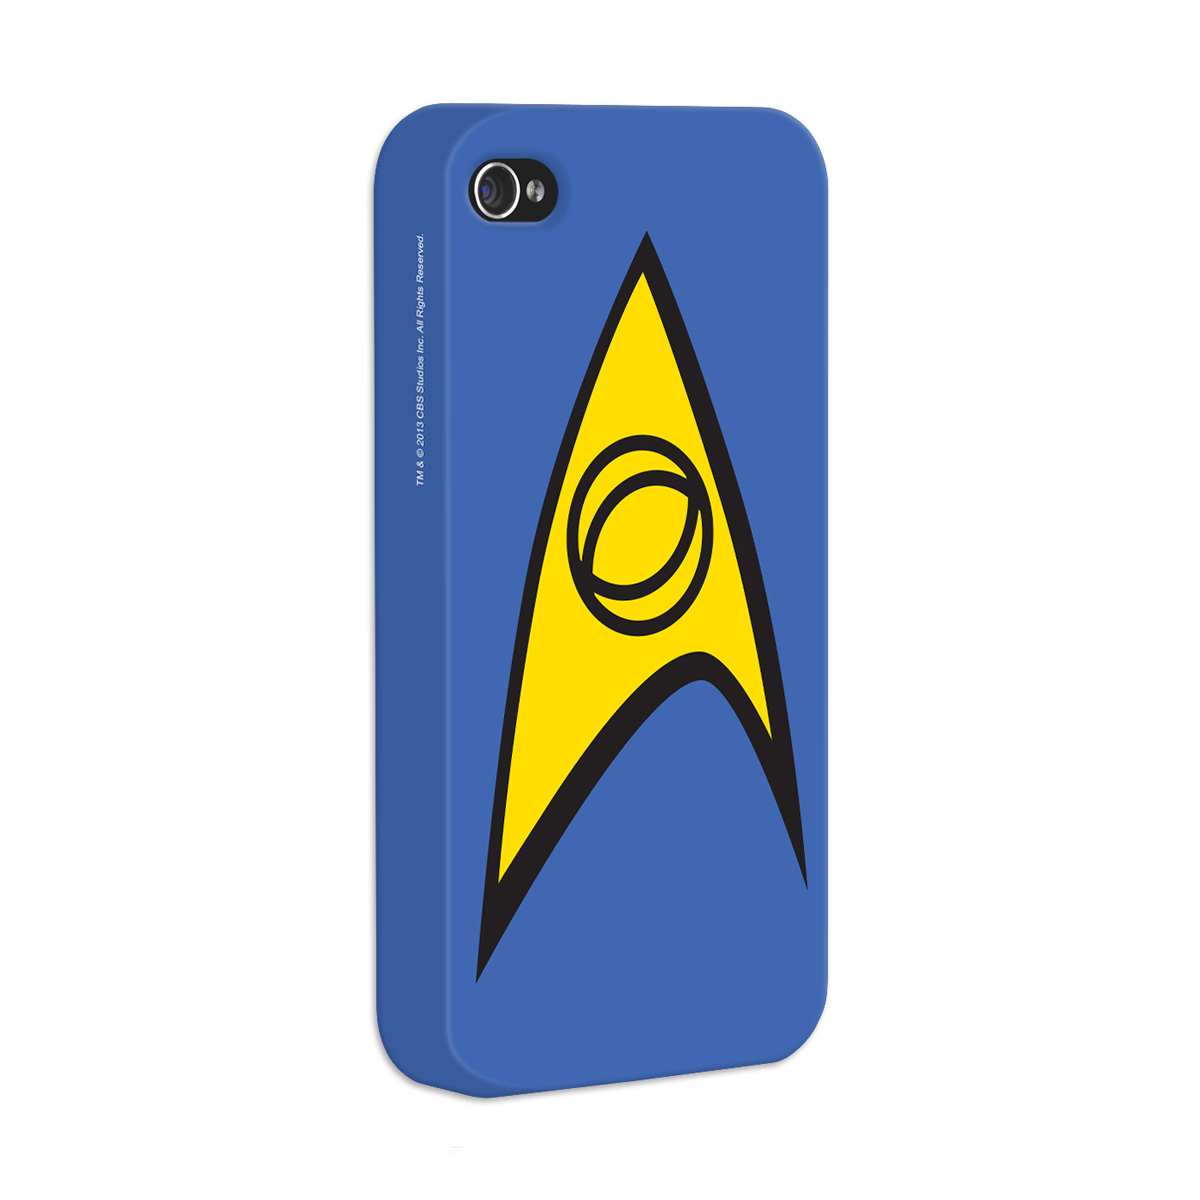 Capa de iPhone 4/4S Star Trek Command  Blue